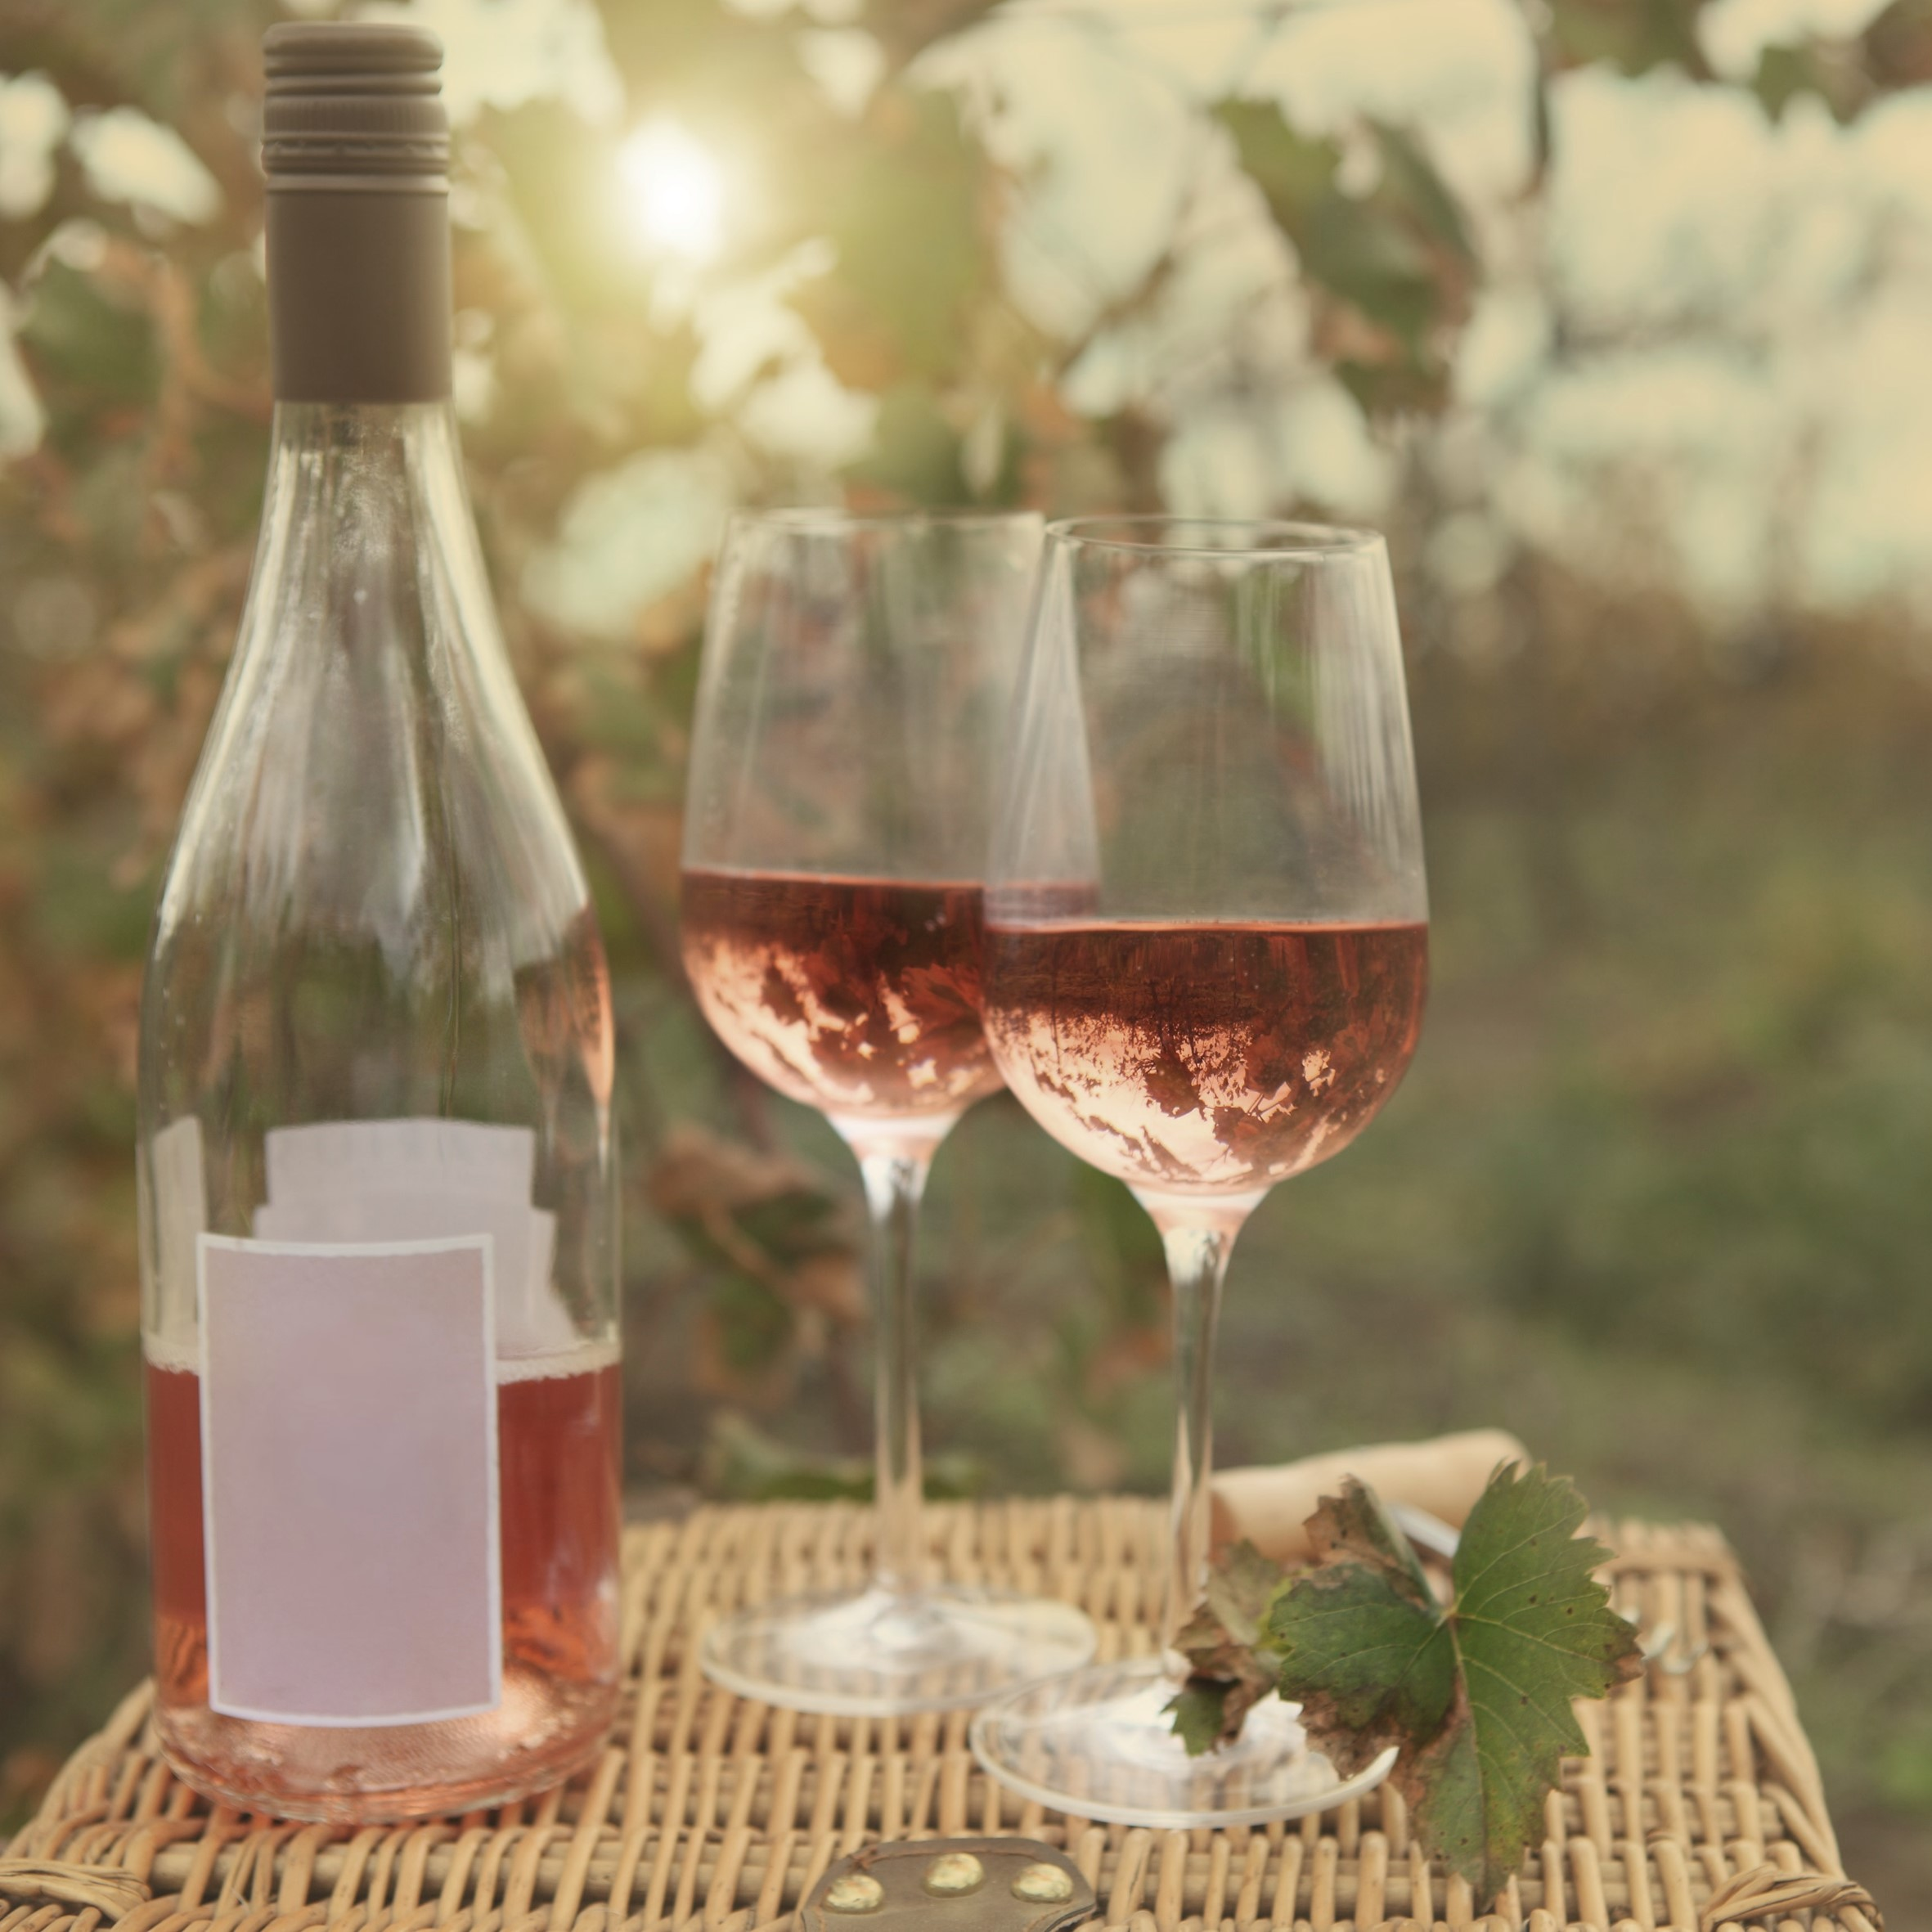 US ROse - Growing Rosés